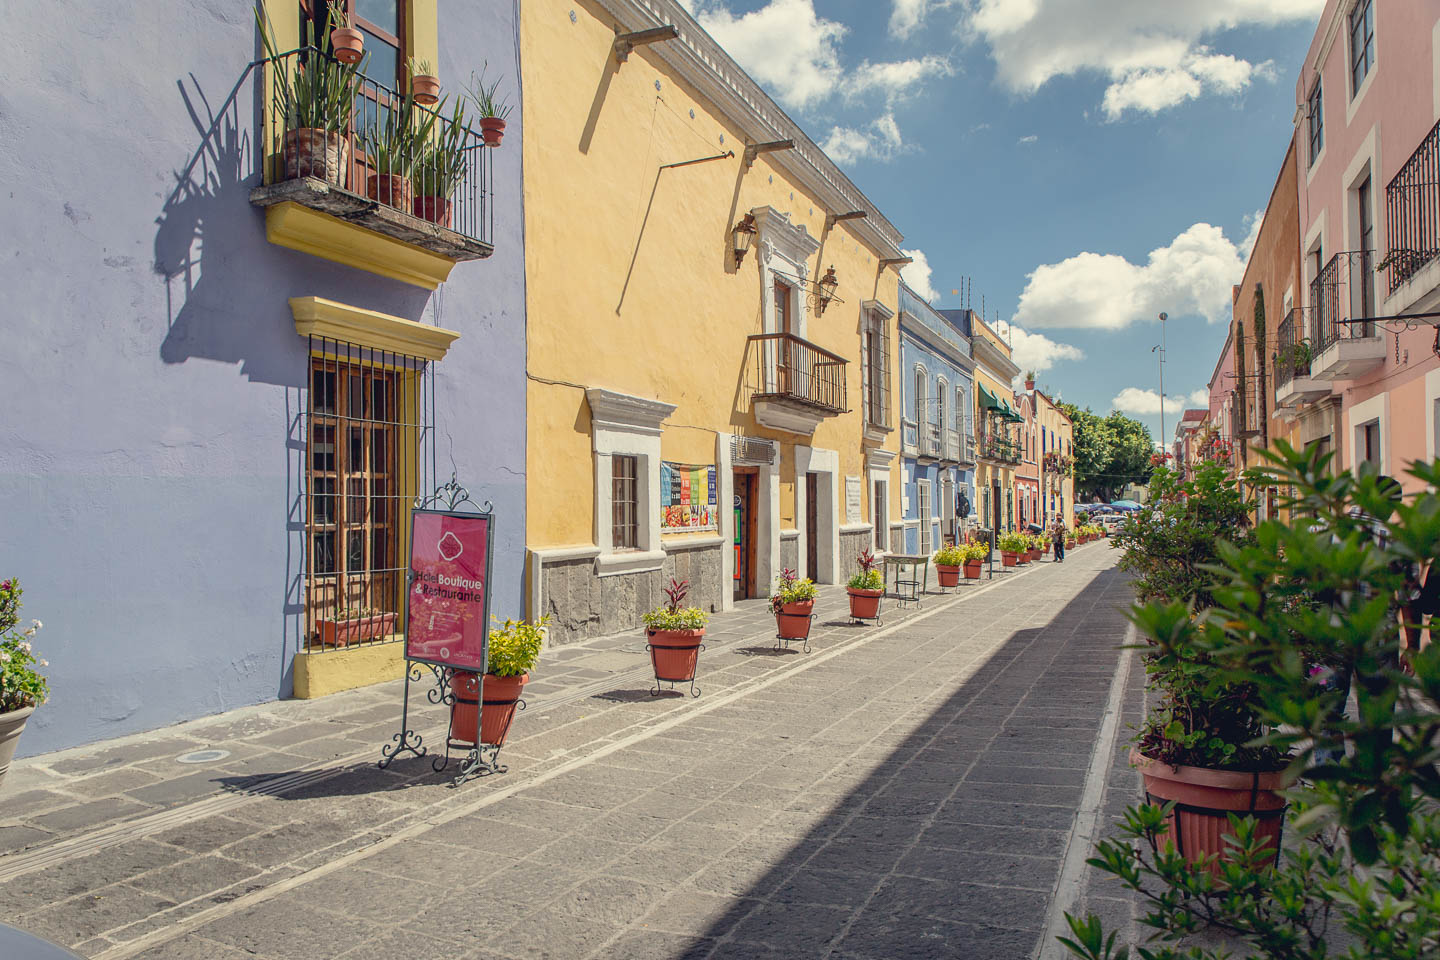 Our one photo of the streets of Puebla.